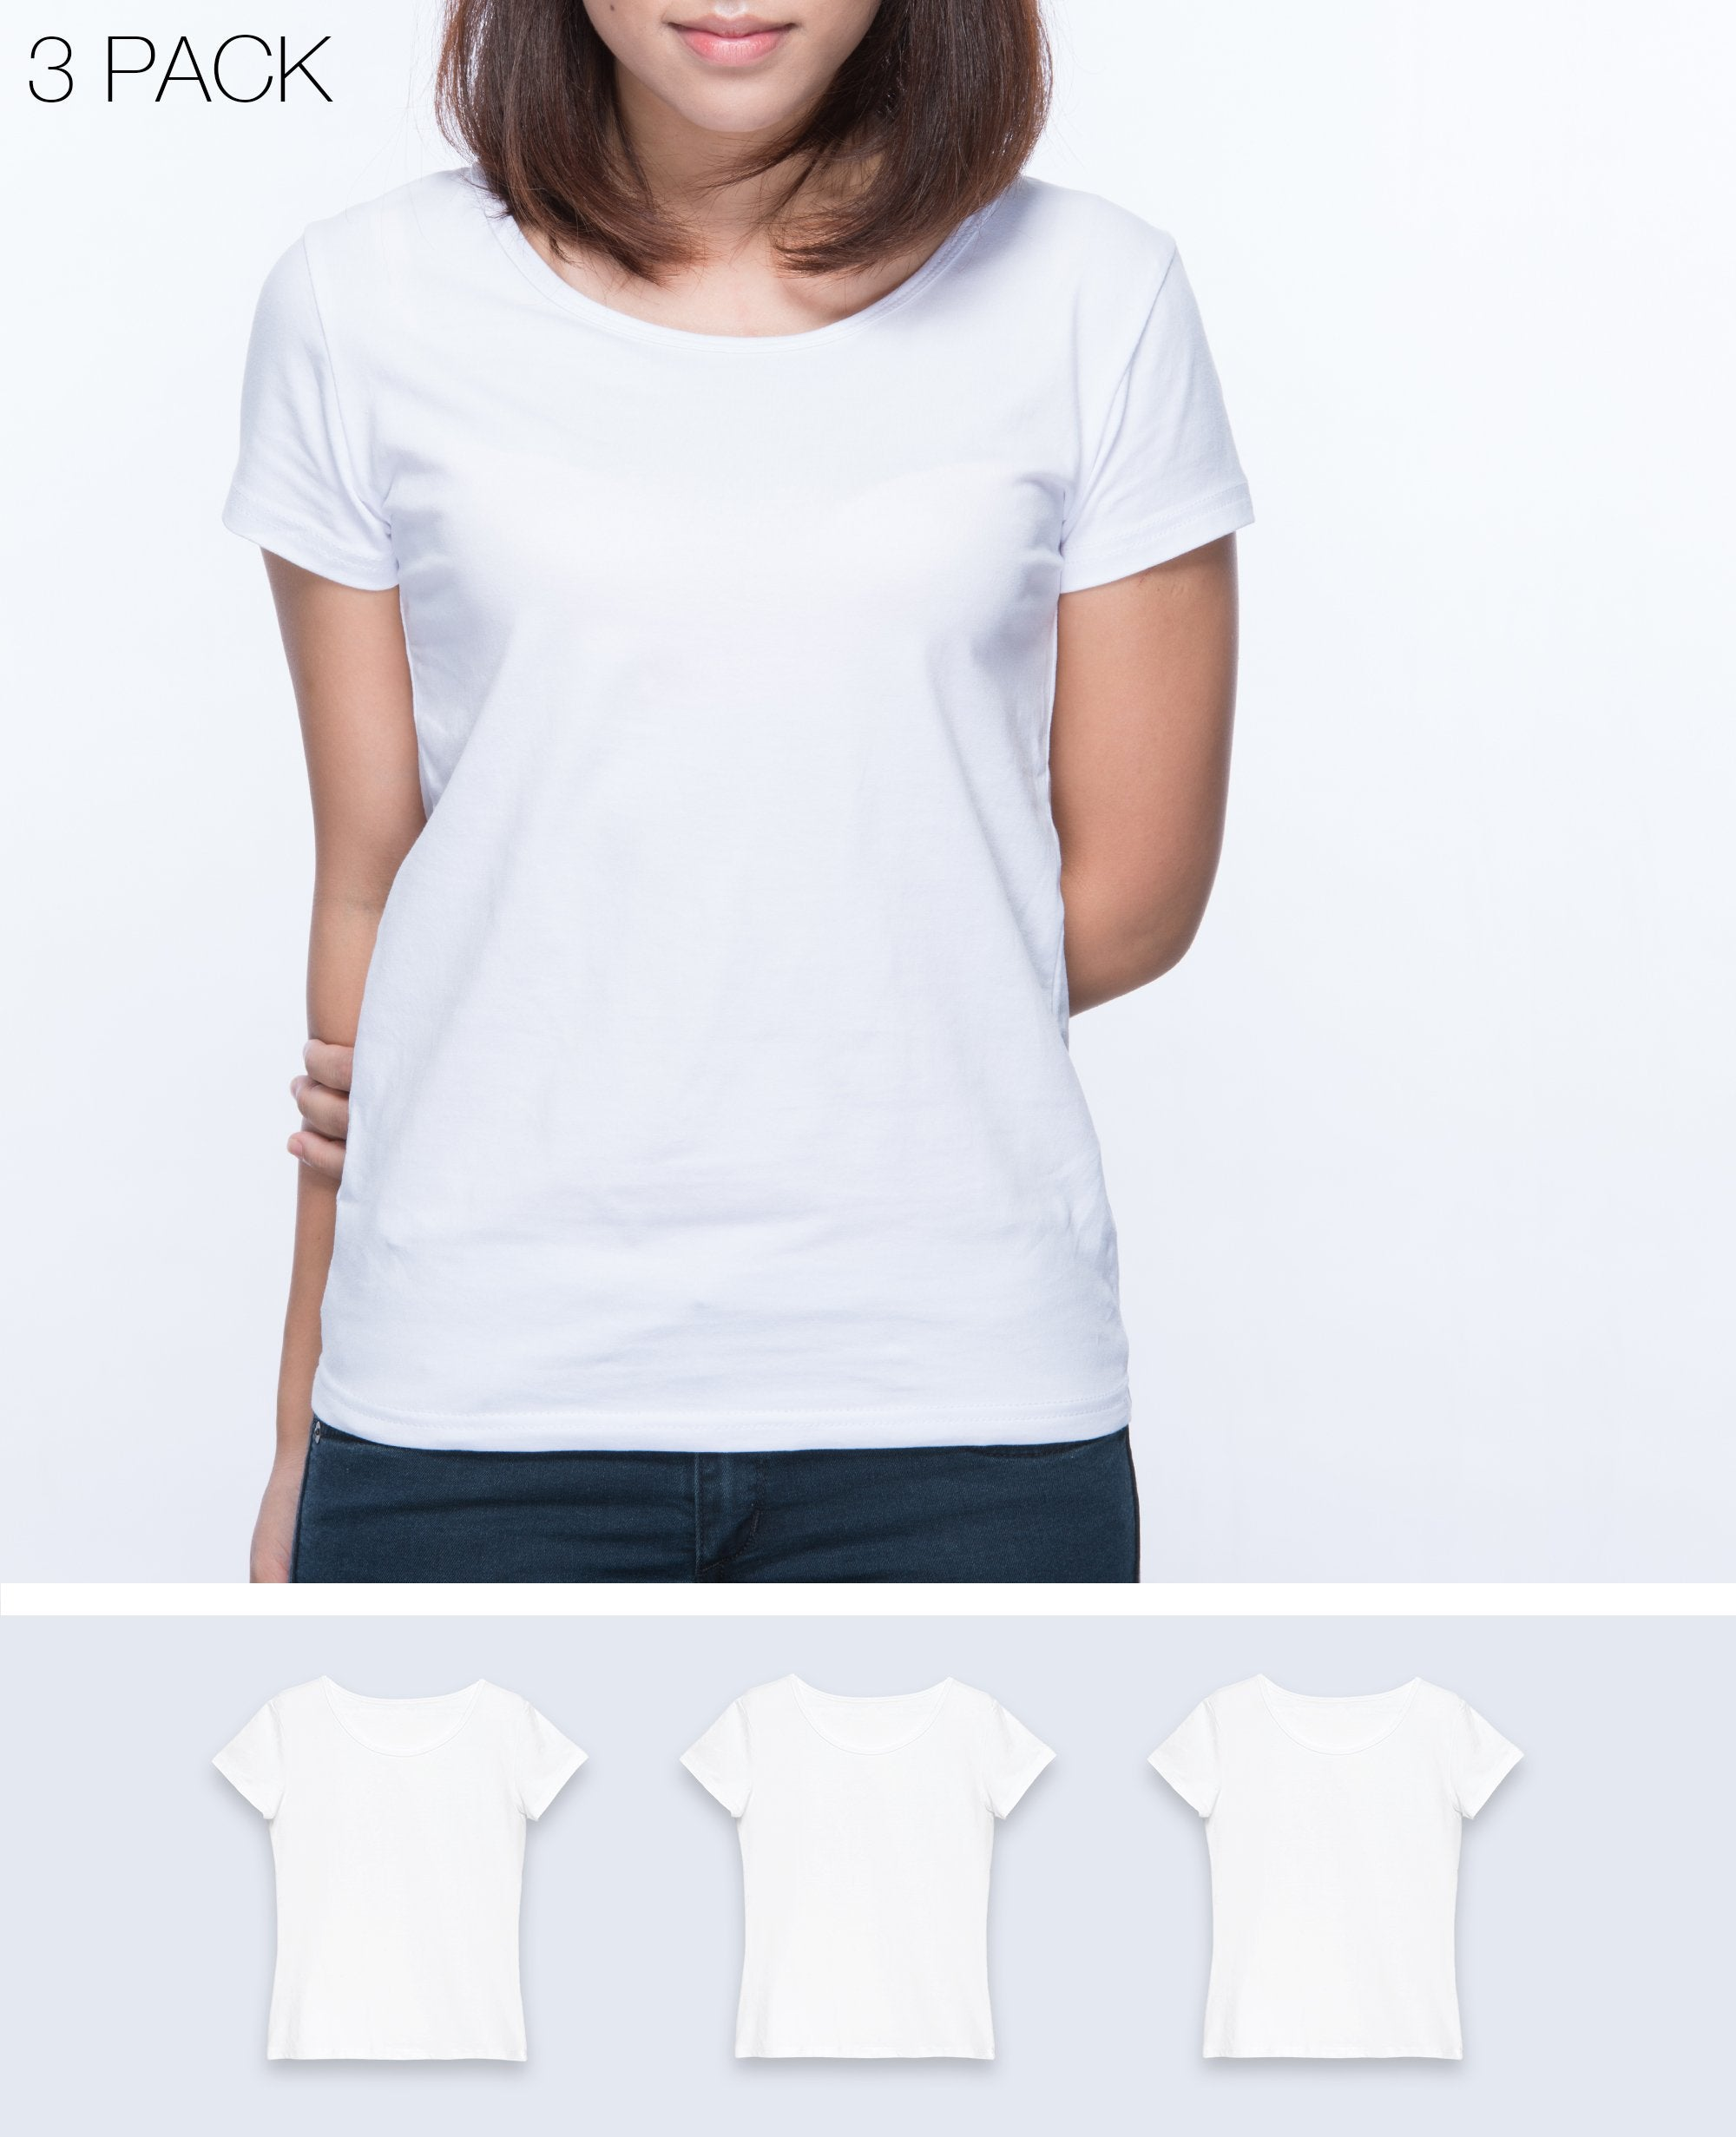 Slim fit T-shirt Women in White 3 pack - T-Shirts - BRANMA - BRANMA